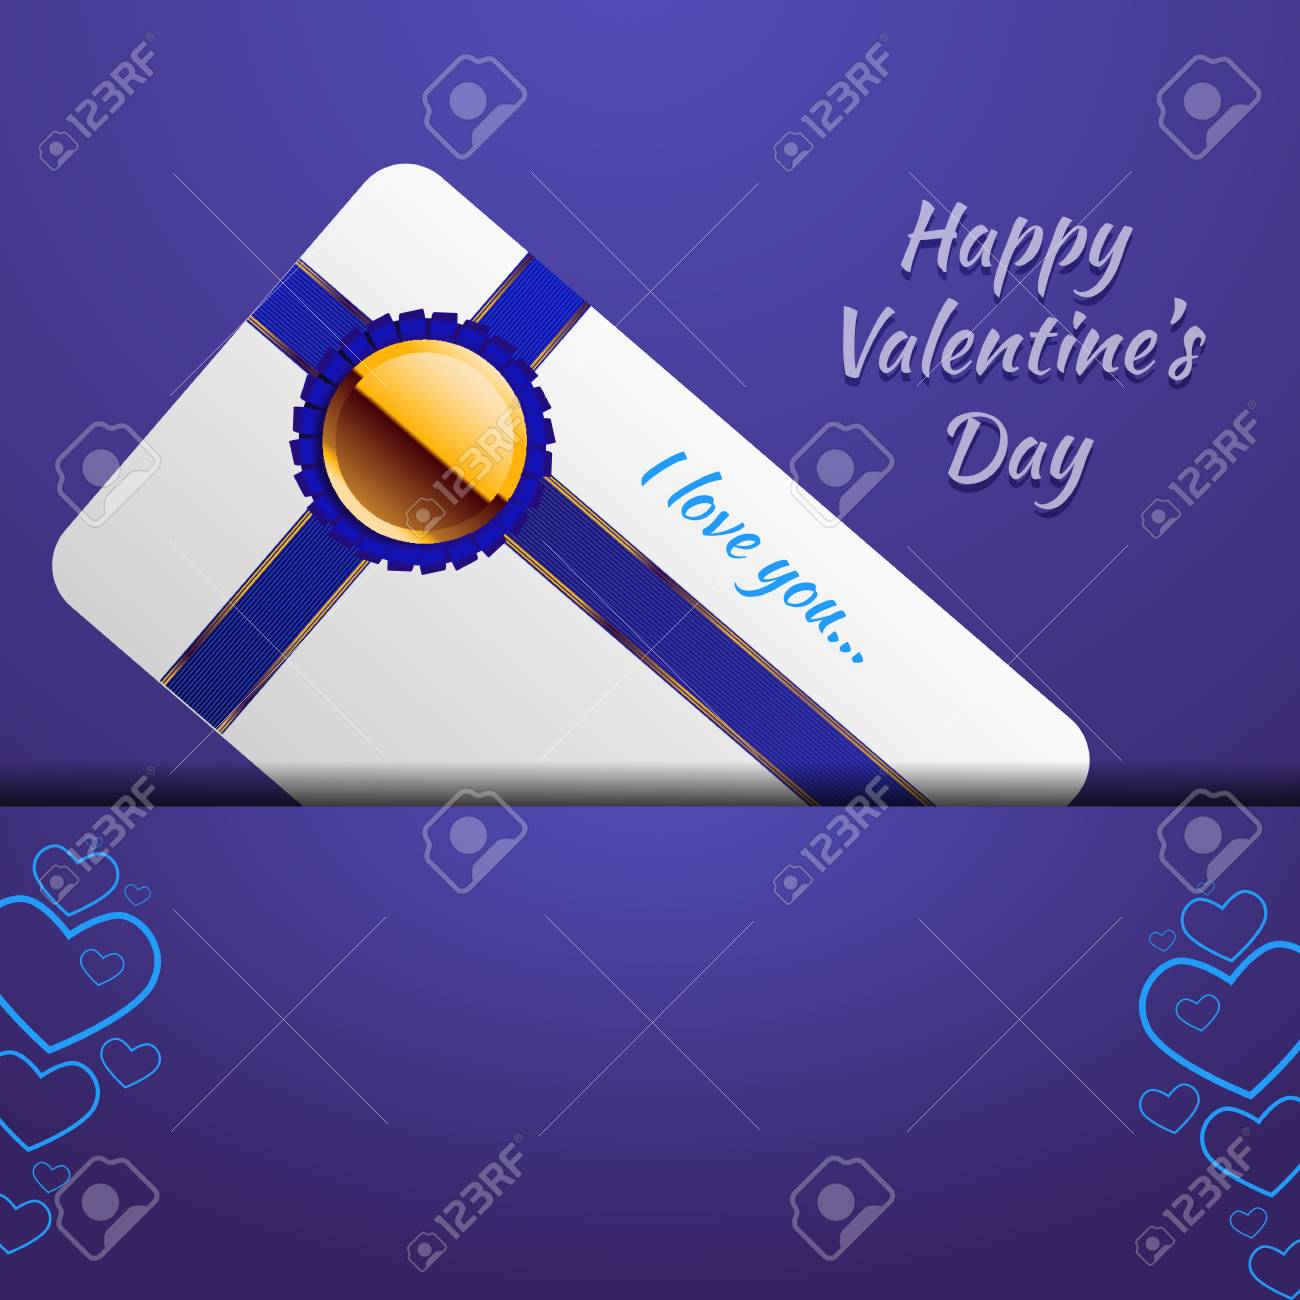 Love You Valentines Day Blue Card Royalty Free Cliparts Vectors